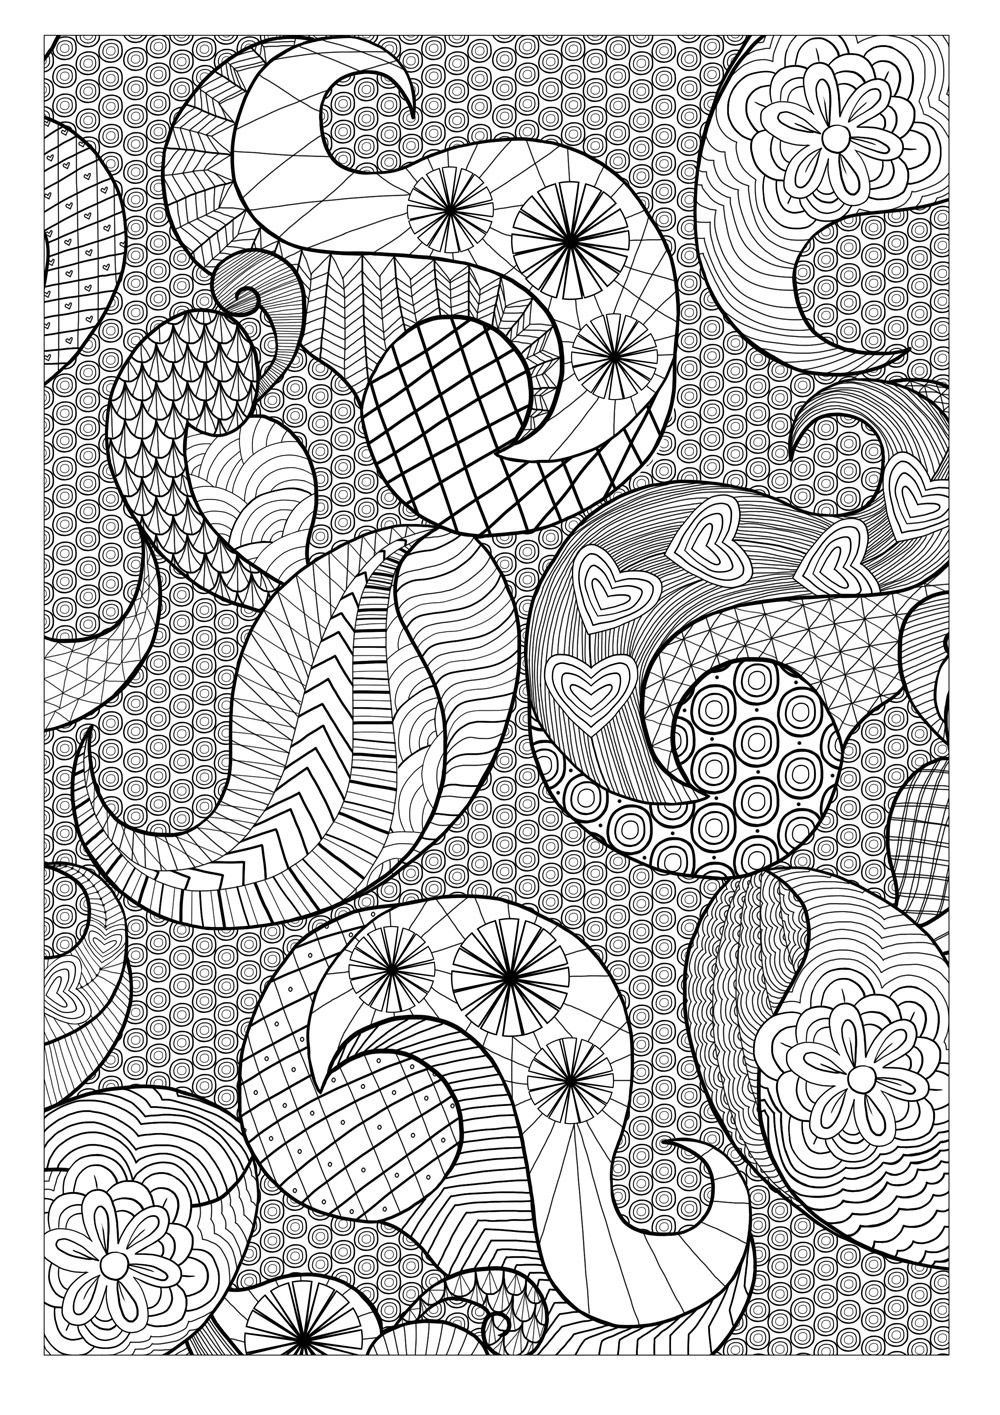 Creative Colouring for Grown-ups : 60s Patterns | Coloring Pages ...